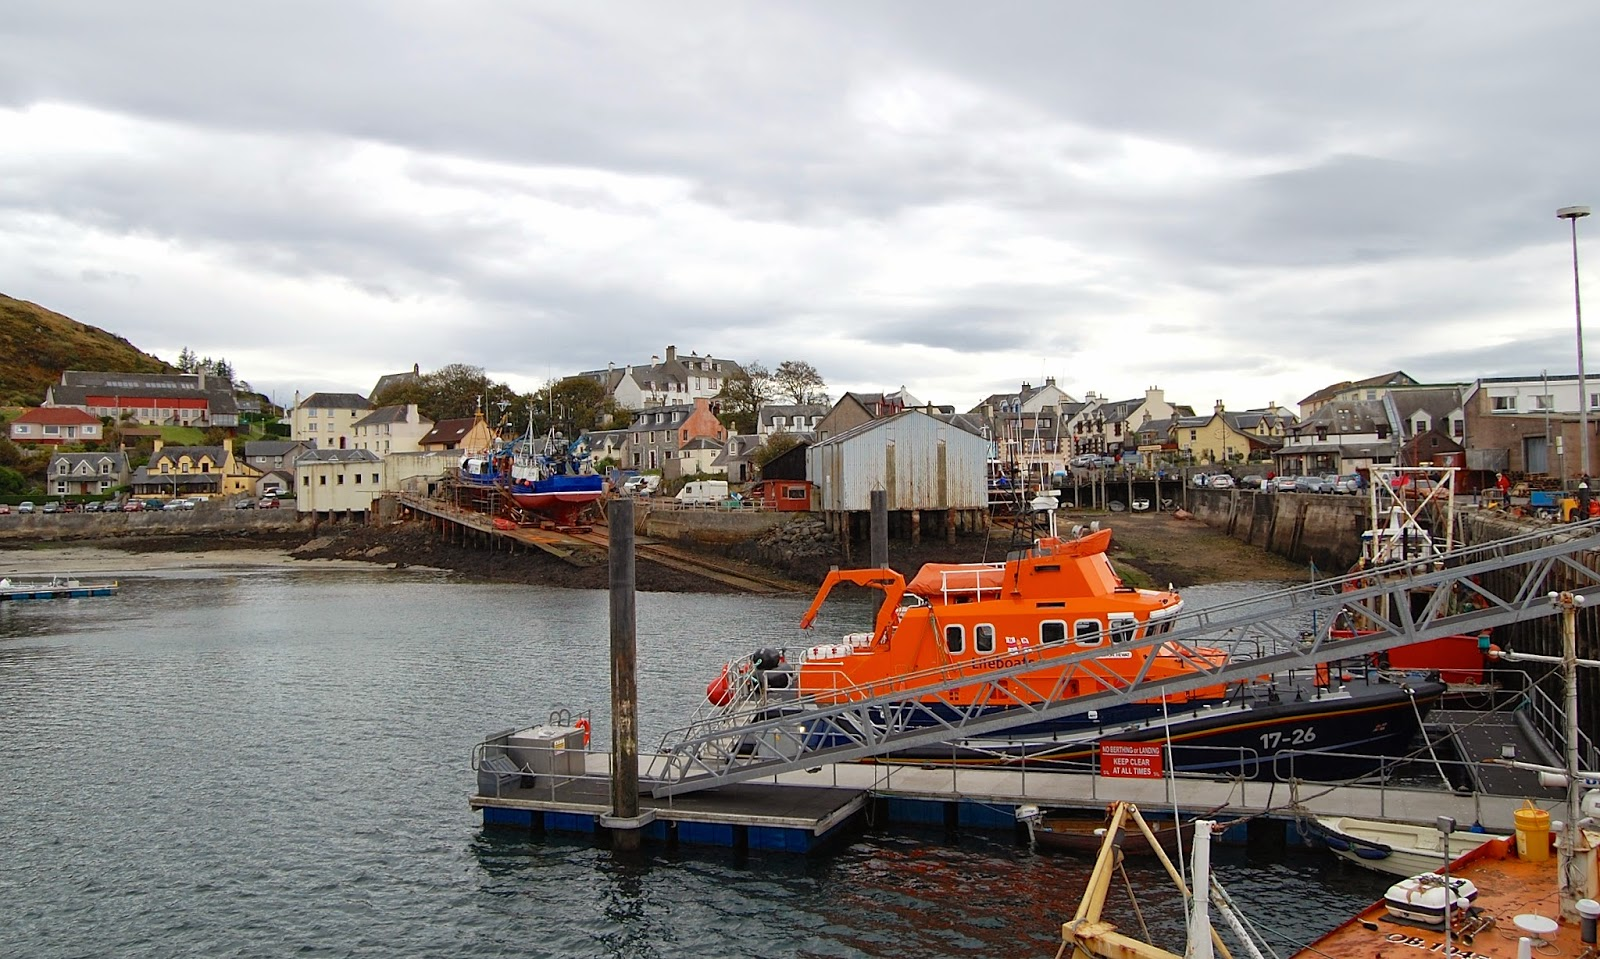 View of Mallaig from the pier